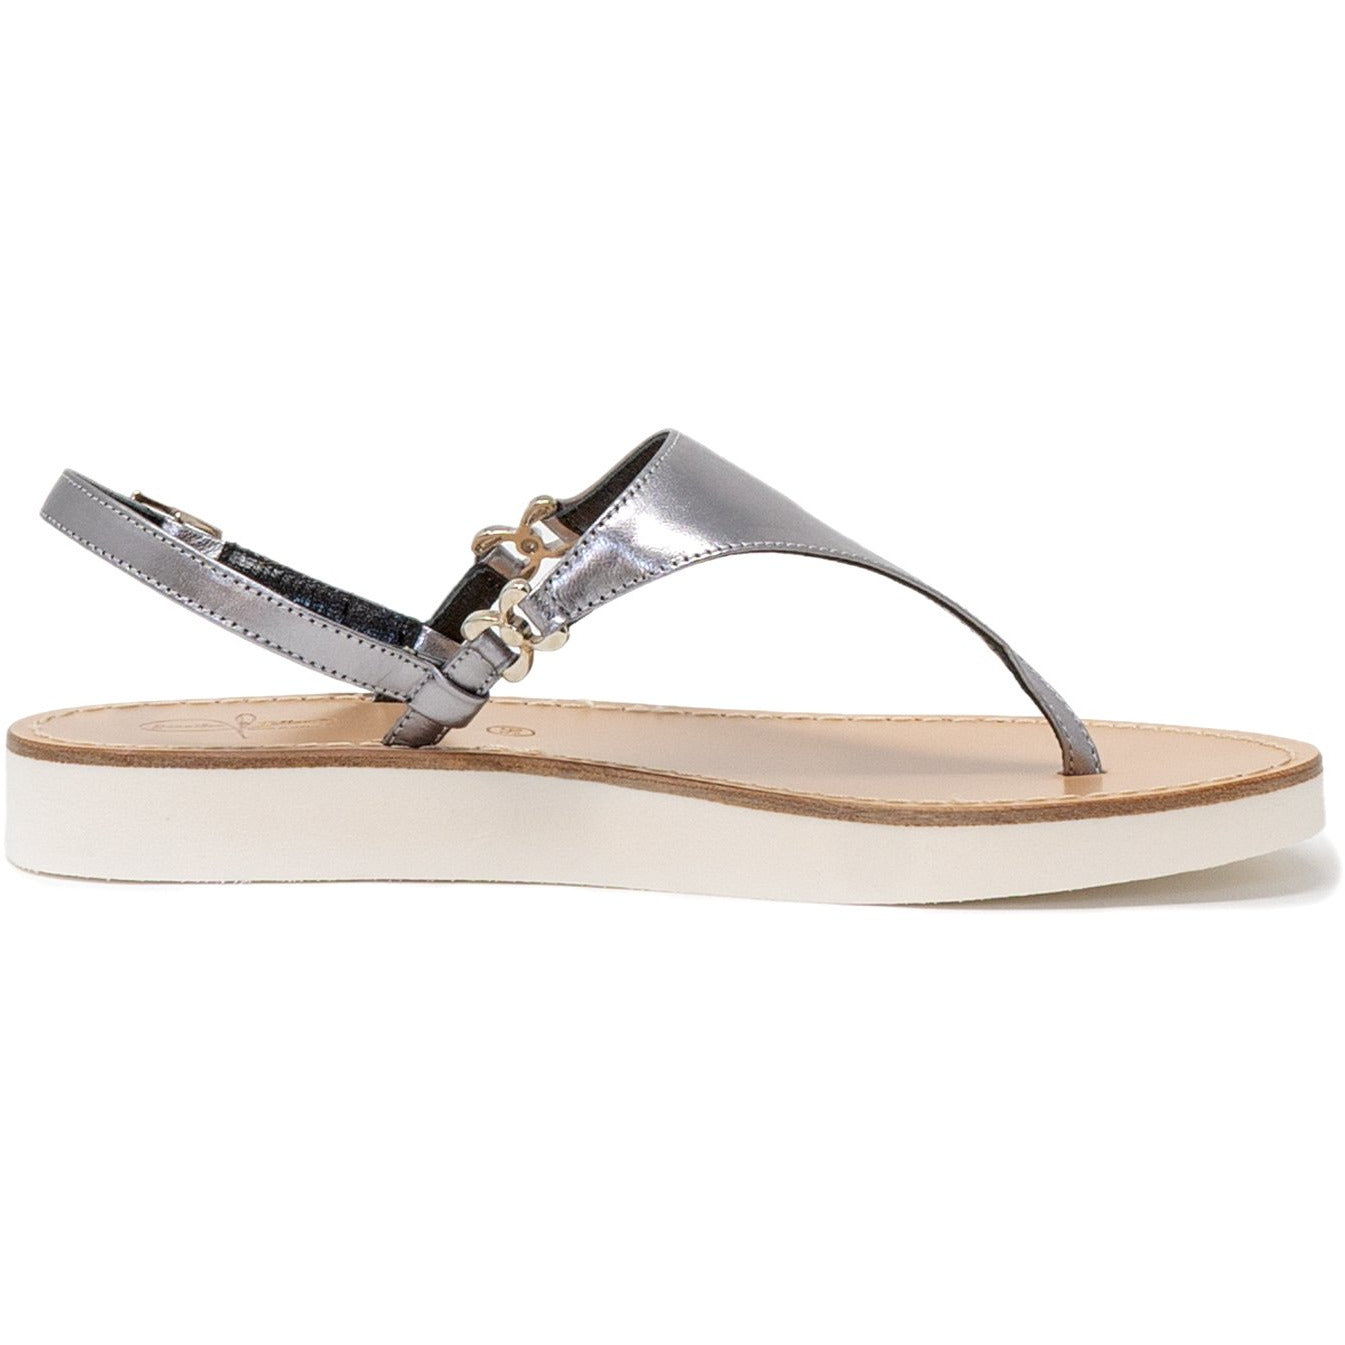 Women Sandals in Silver with white sole